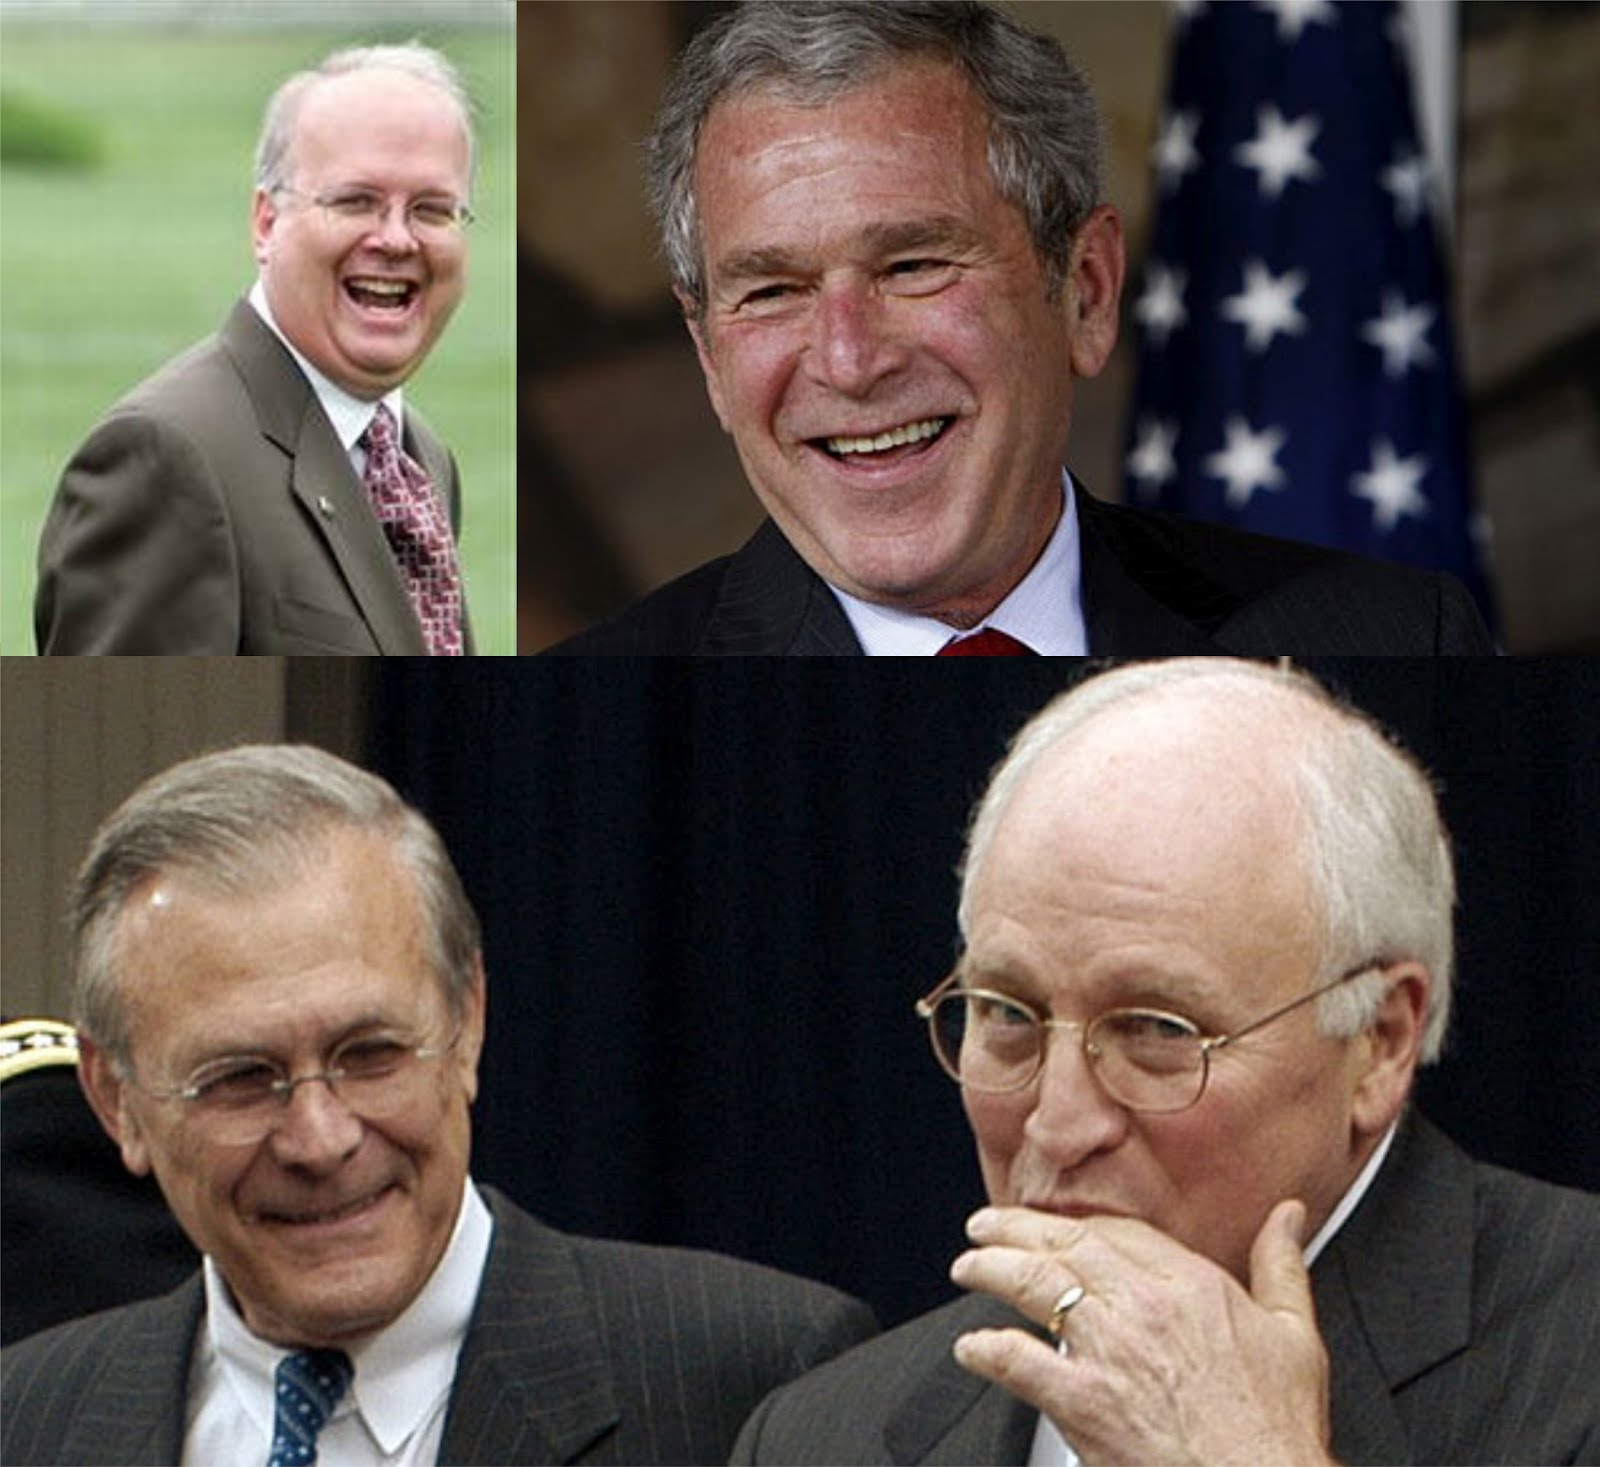 Rove, Bush Jnr, Rumsfeld & Cheney.